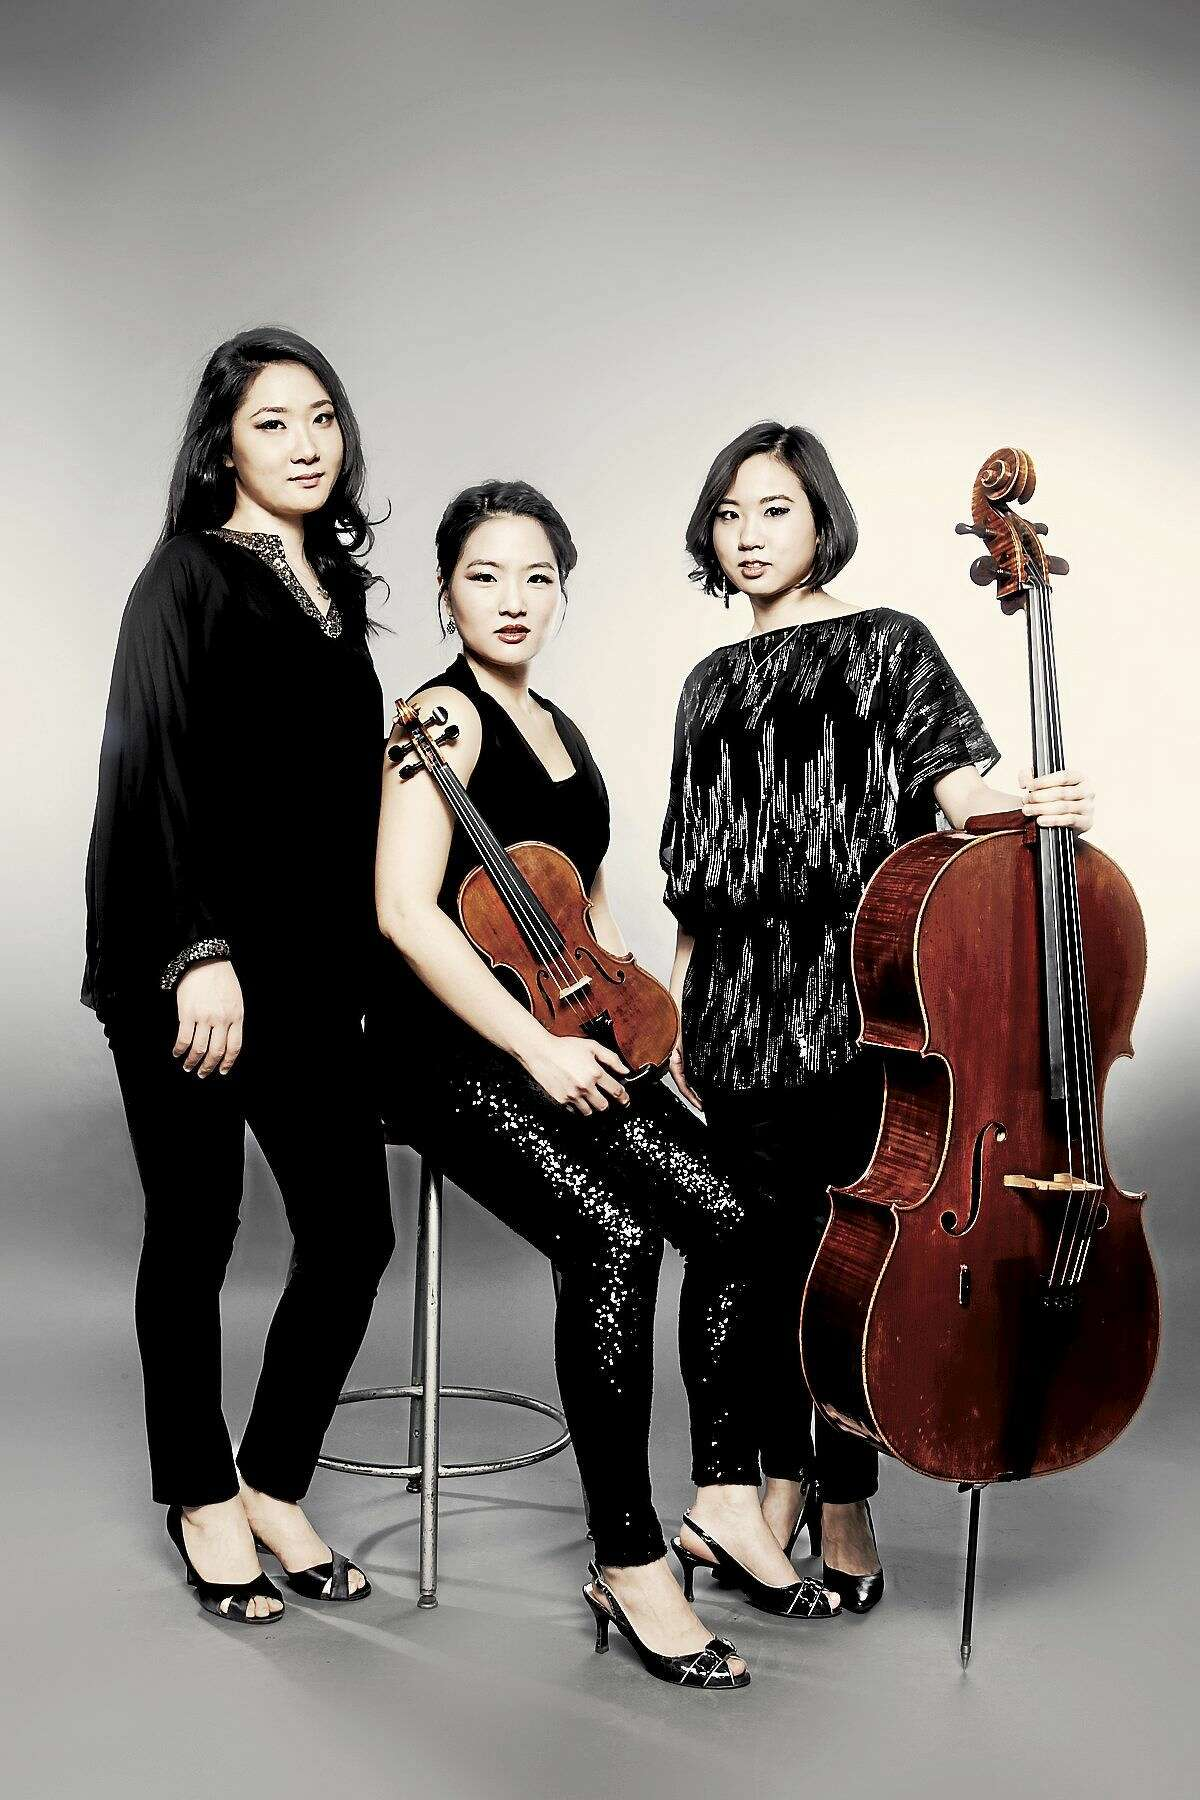 Photo by Sohyeon Jenny Eom The Allant Trio will perform in a free concert June 21 during an open house at the Norfolk Chamber Music Festival.